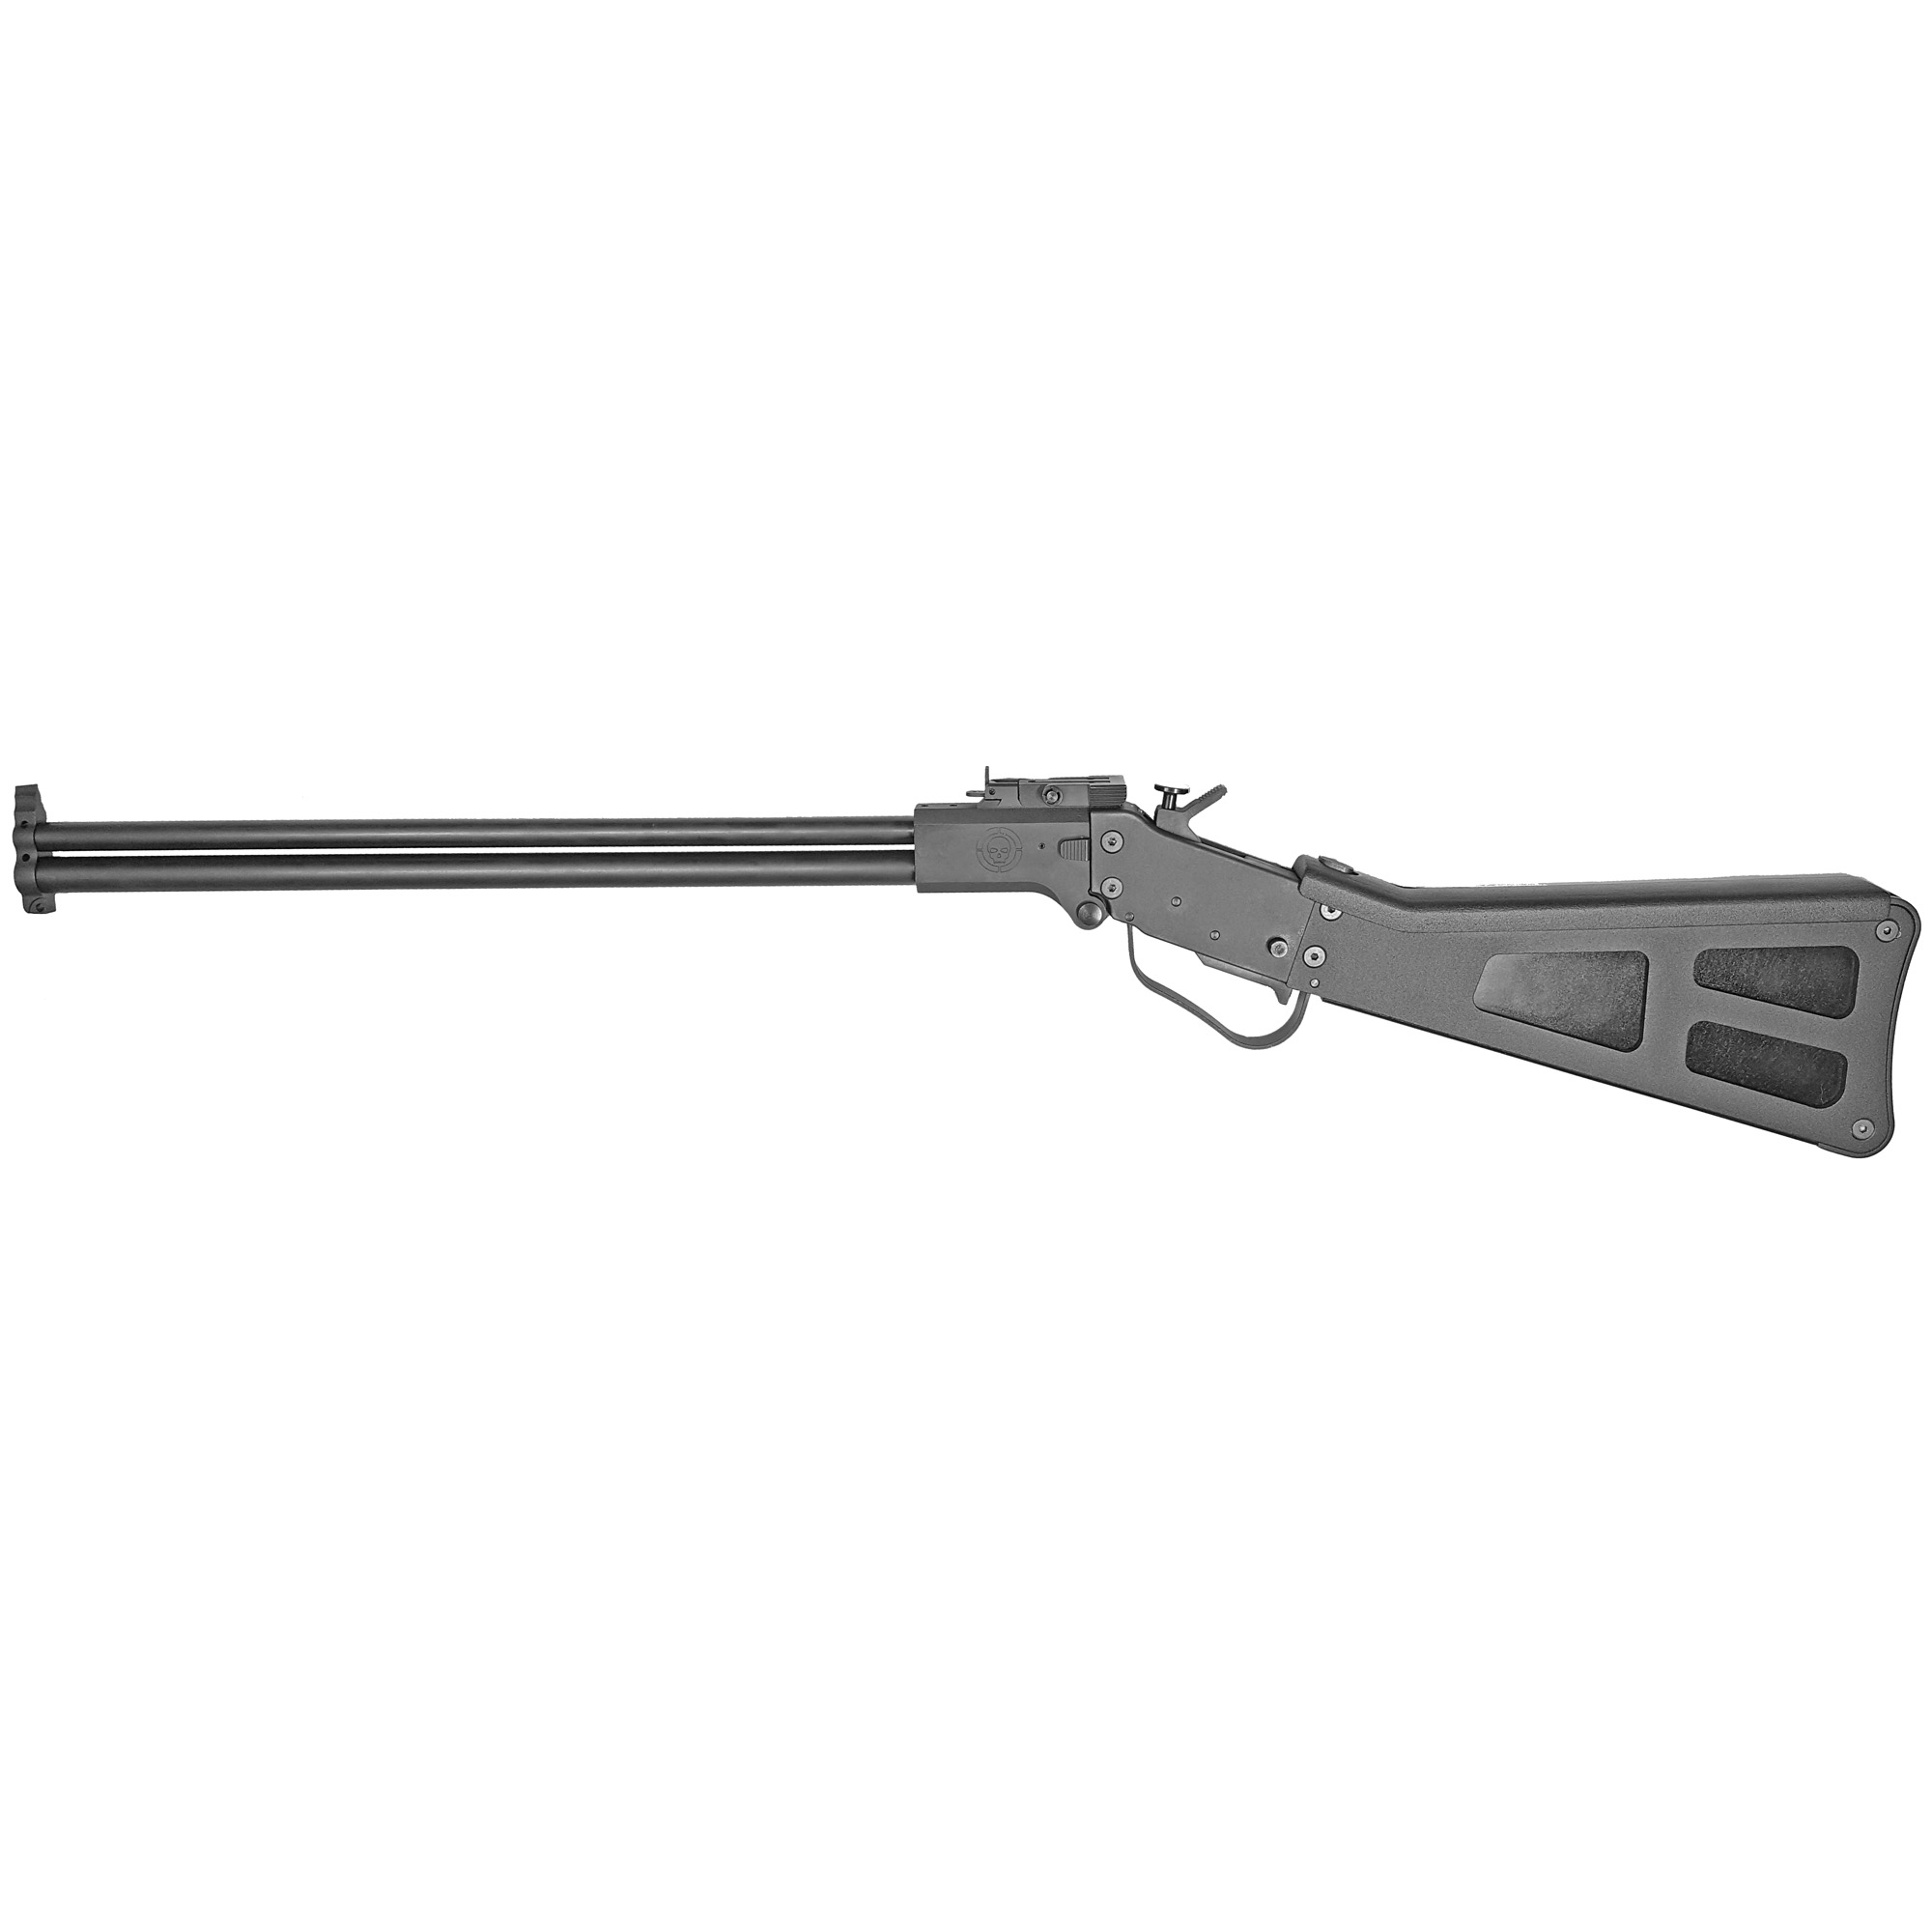 """TPS Arms M6 Takedown is an over/under 17HMR"""" 410Ga with a 3"""" chamber. It is all steel constructed with a 18.25"""" barrel. It features flip up rear peep sights and an AR style takedown pin for quick breakdown. Includes full choke tube with wrench and shell storage in stock."""